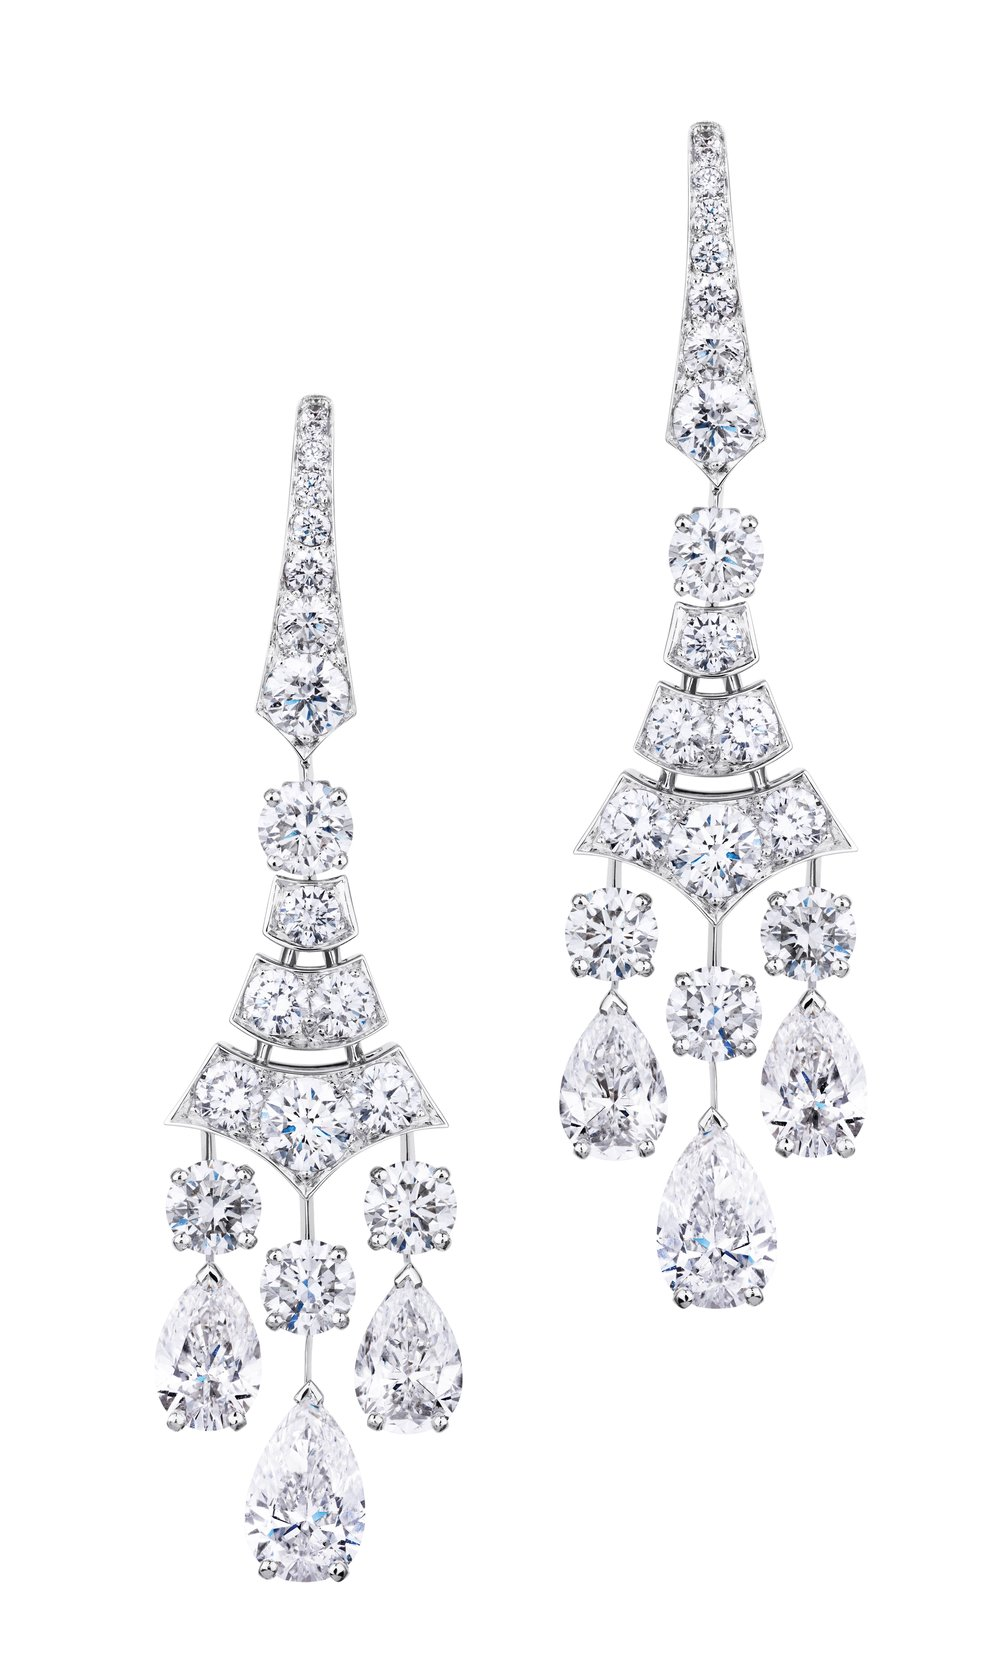 Phenomena Frost 10.15ct Including Two 1.0ct Pear-Cut Diamond Earrings by De Beers